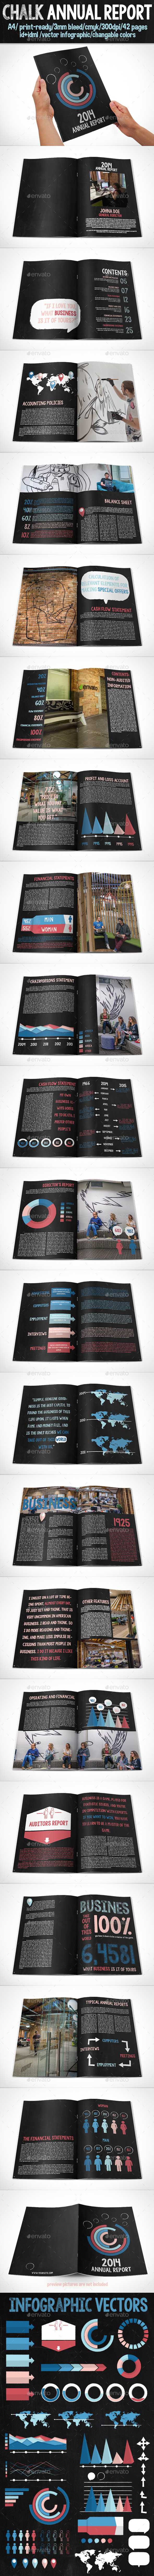 Chalk Annual Report - Corporate Brochures